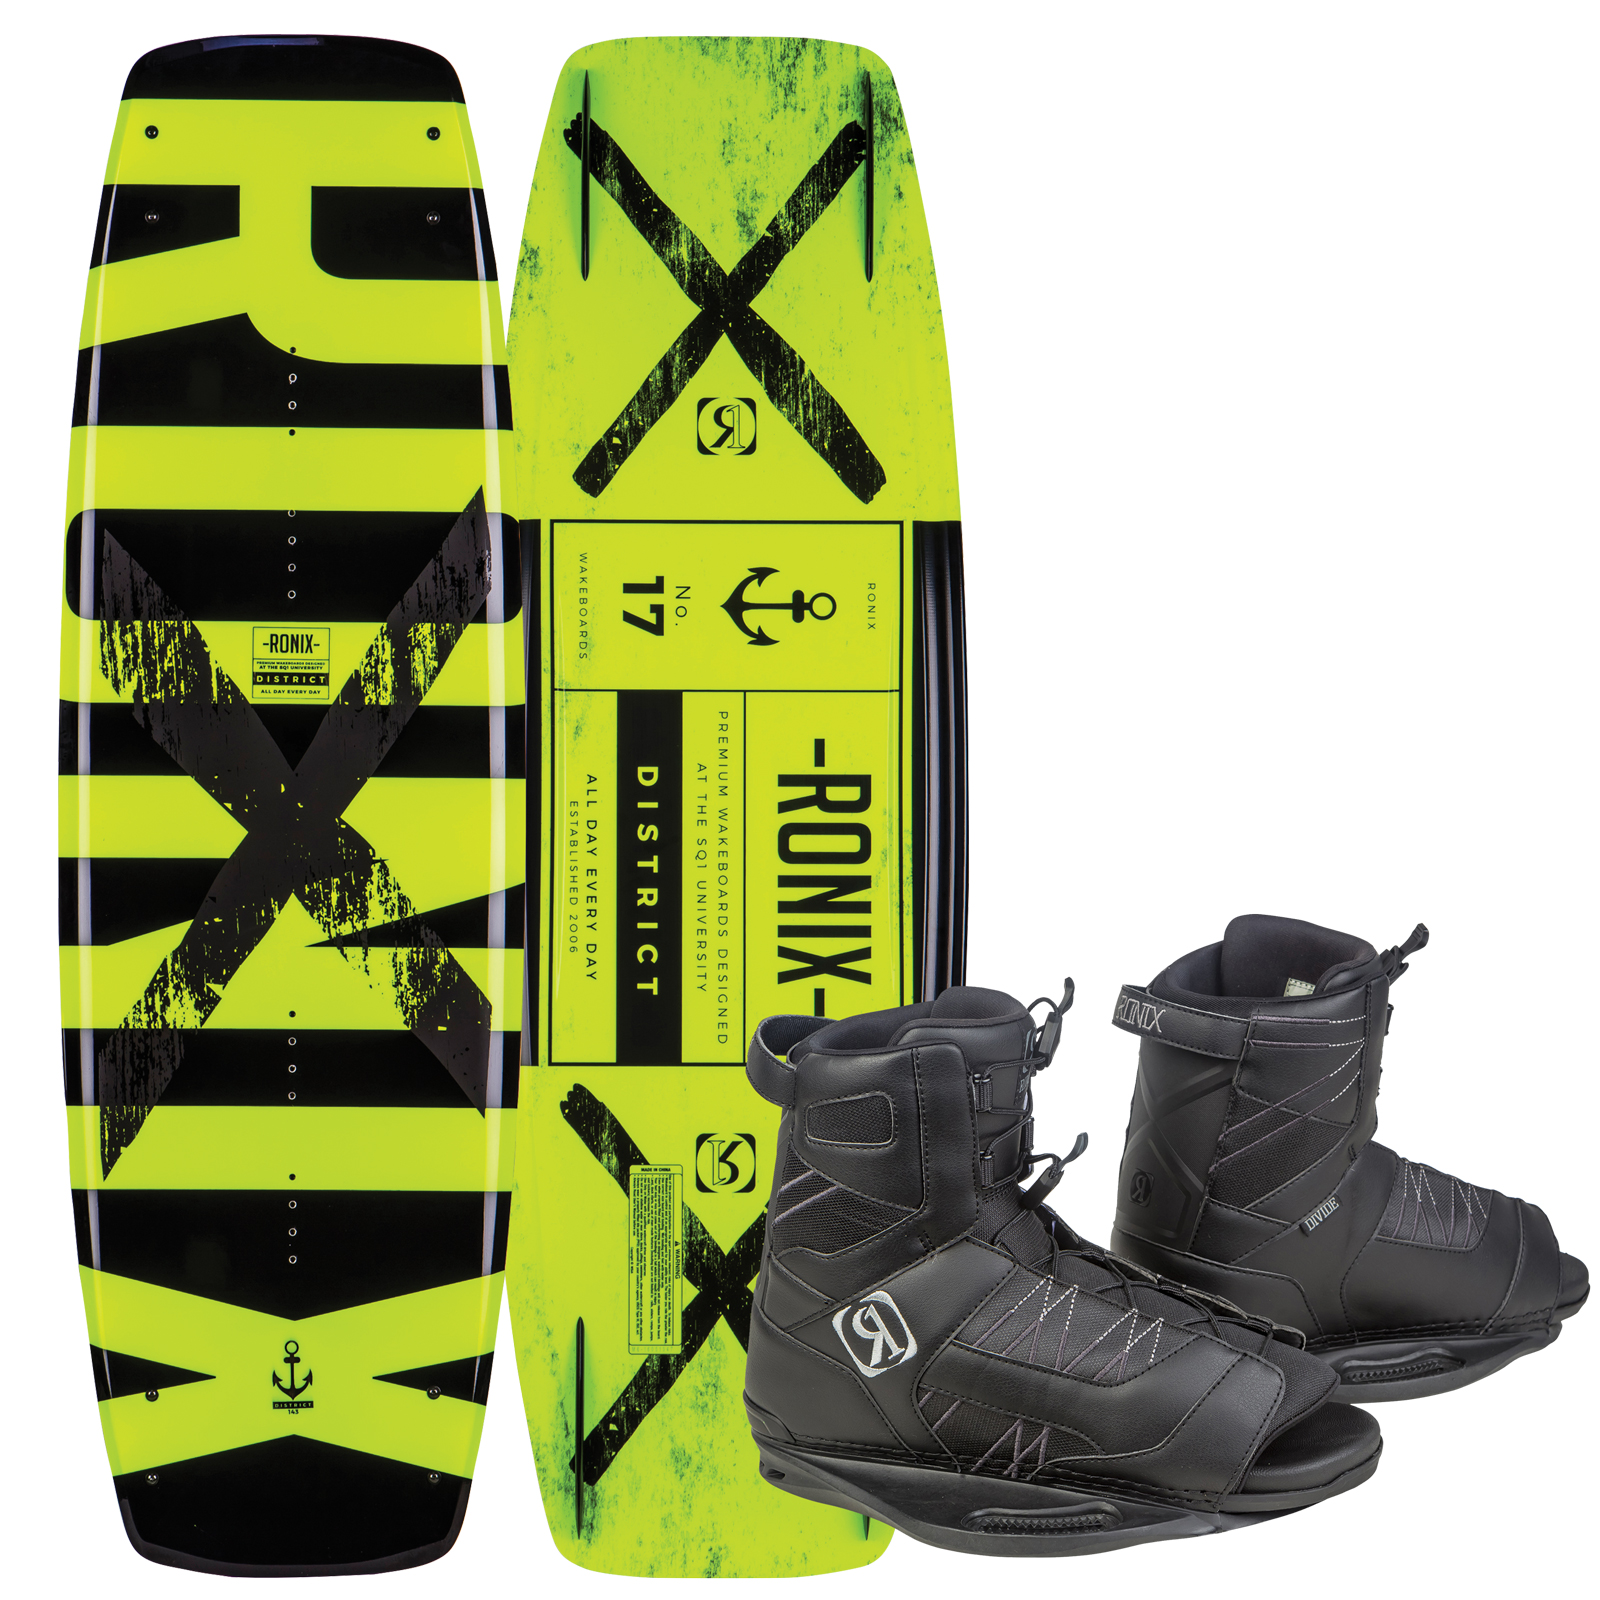 DISTRICT 138W/ DIVIDE PACKAGE RONIX 2017